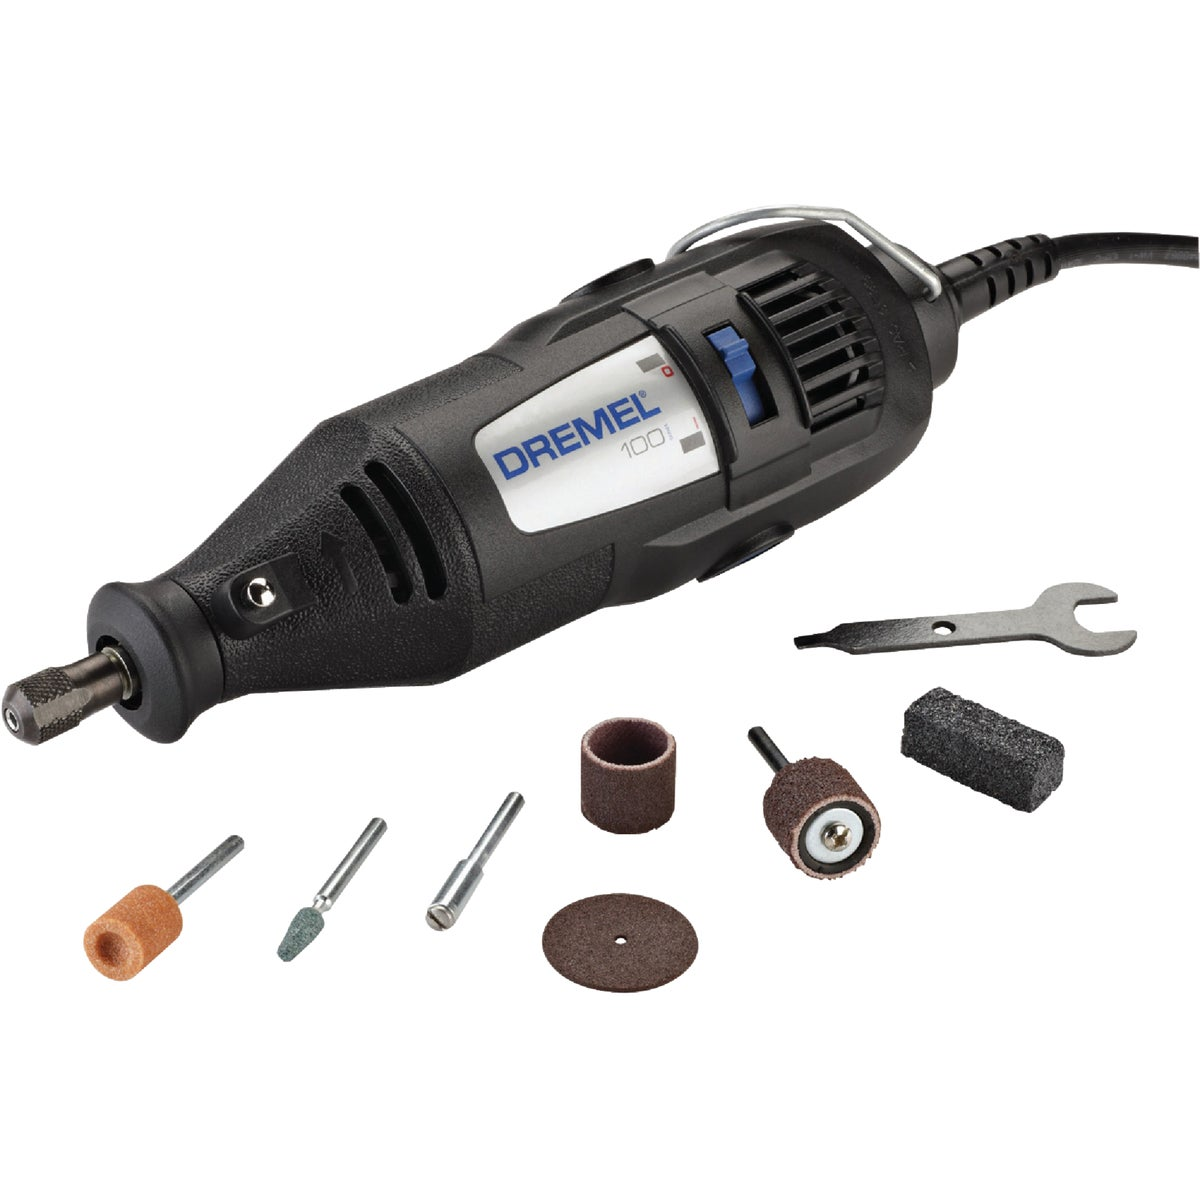 SINGLE SPEED MOTO-TOOL - 100-N/7 by Dremel Mfg Co